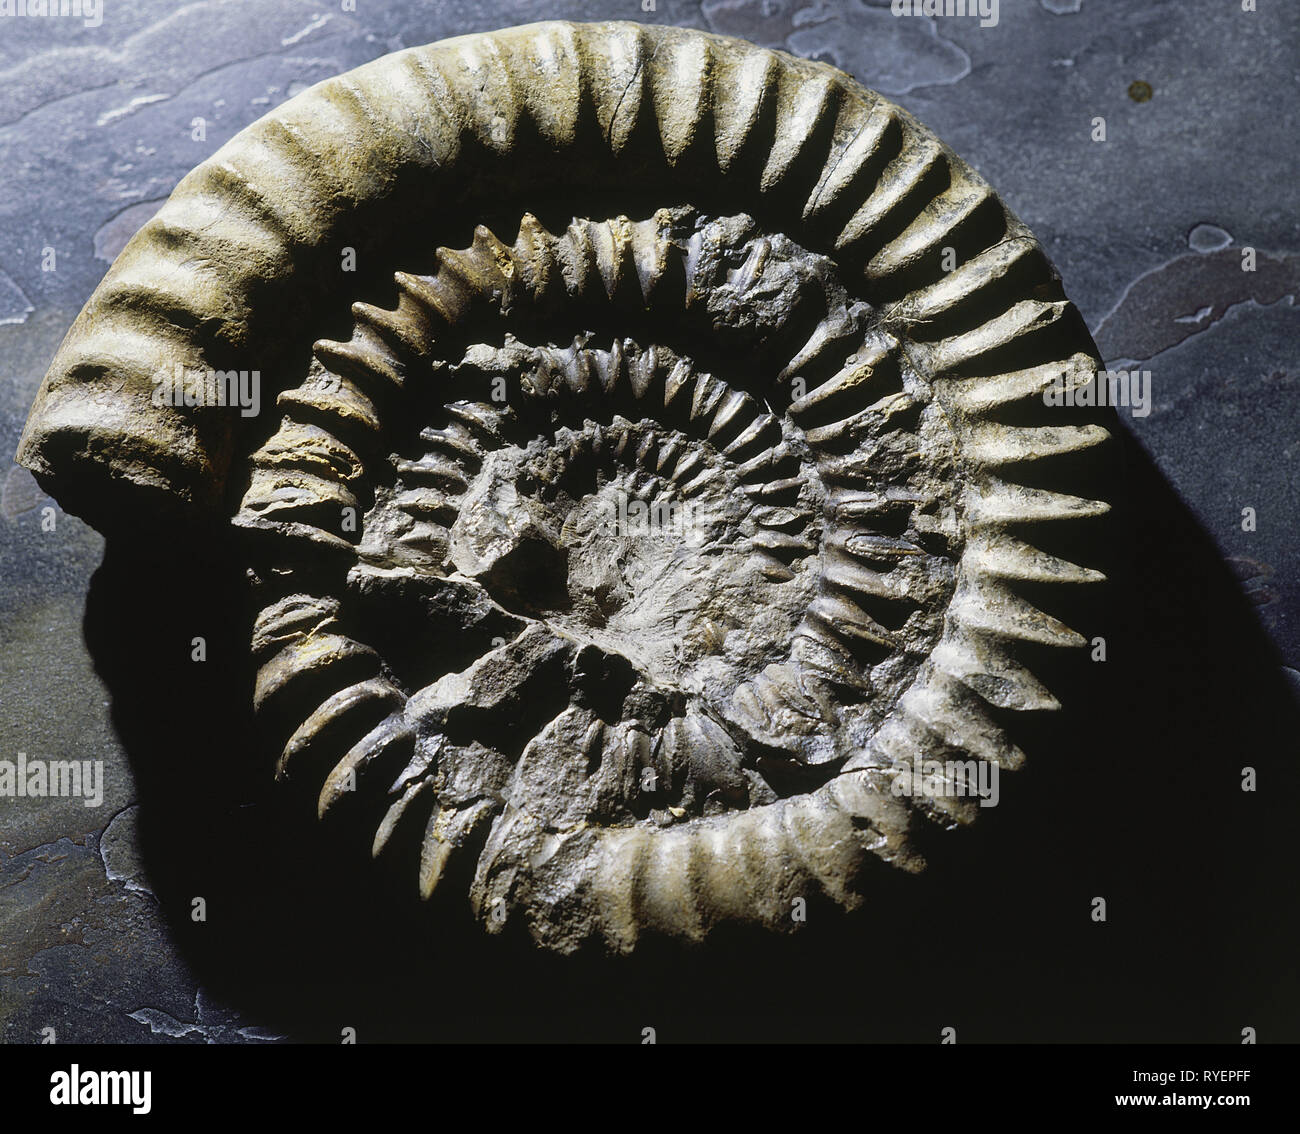 prehistory, fossil, fossil, zoology, petrified ammonite, Additional-Rights-Clearance-Info-Not-Available - Stock Image